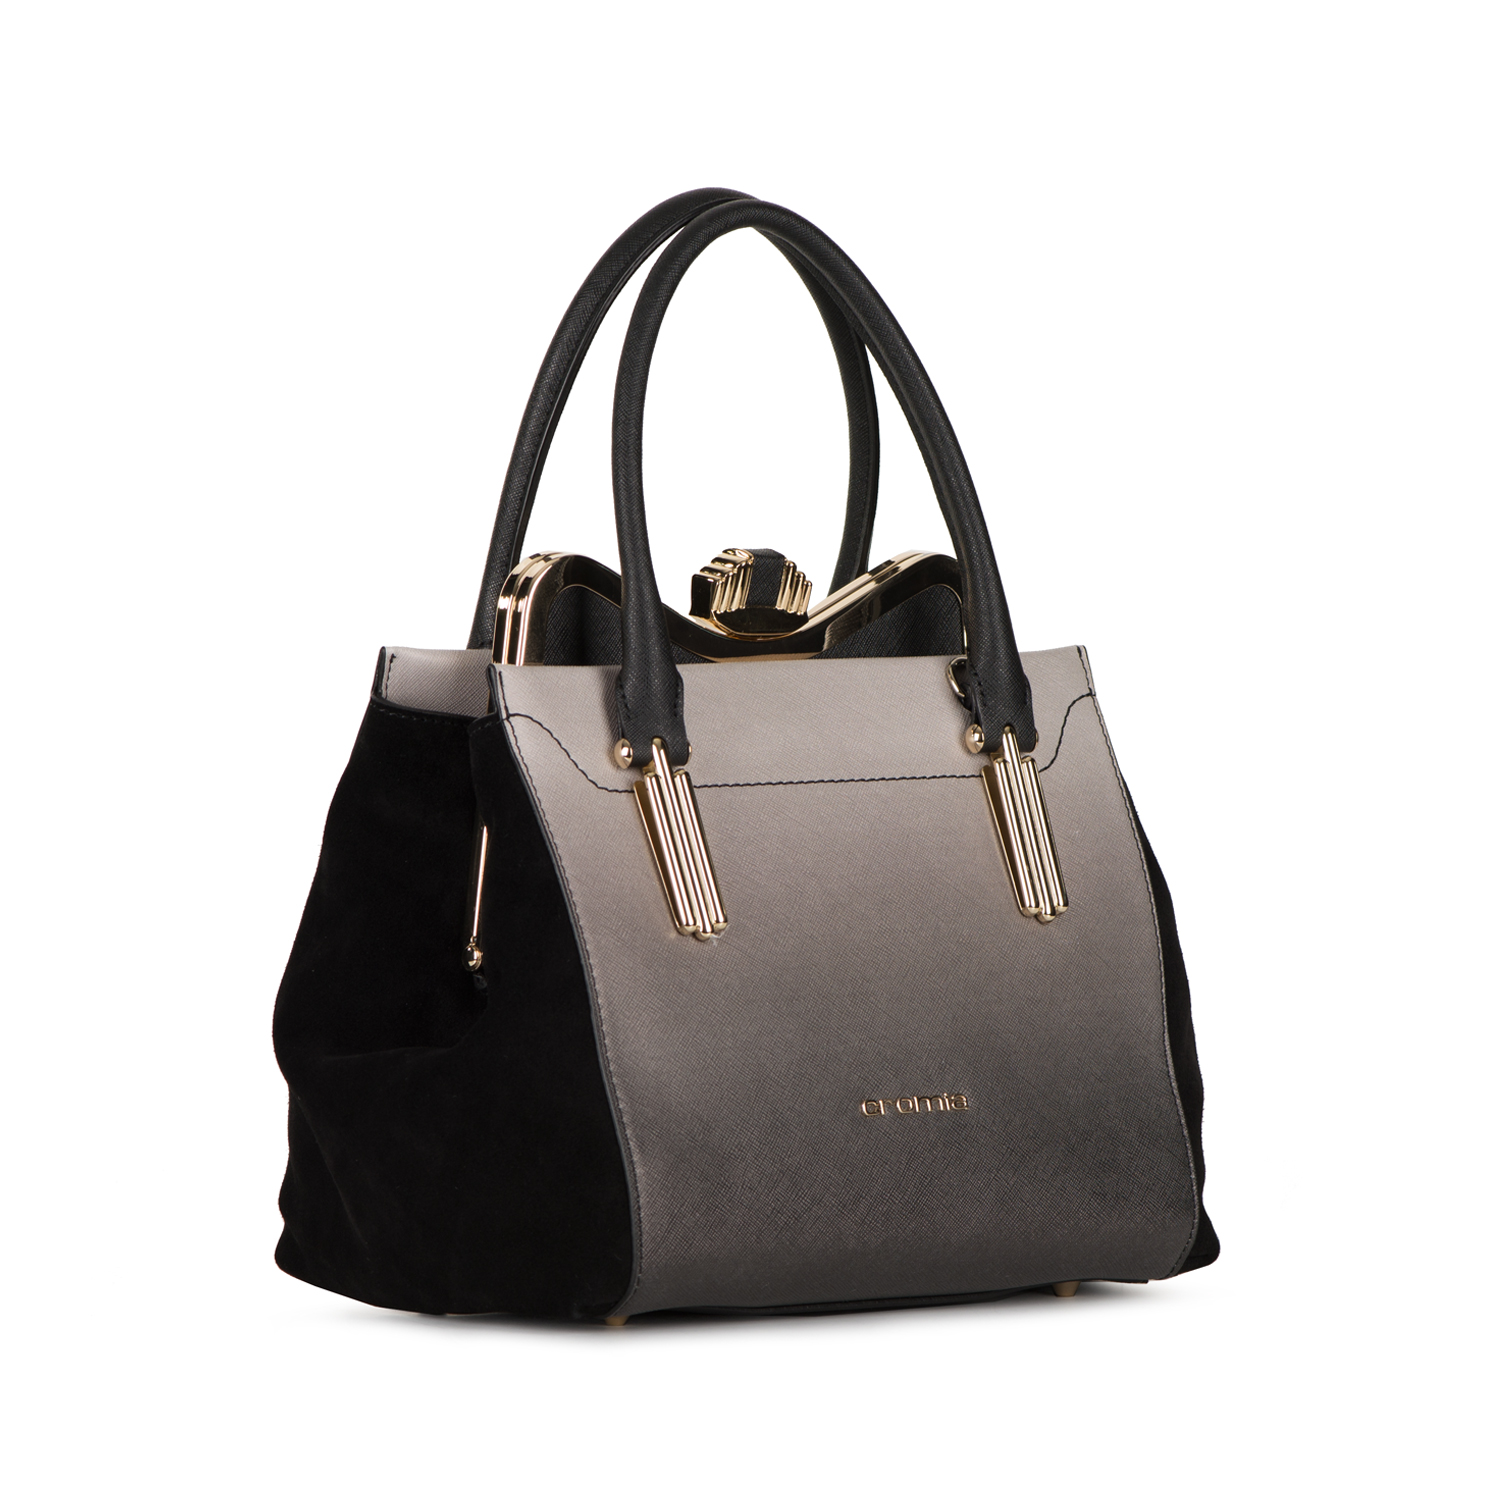 Crosia Handbags : Cromia Clip closure handbag for 432.00 lv. - PEPINA